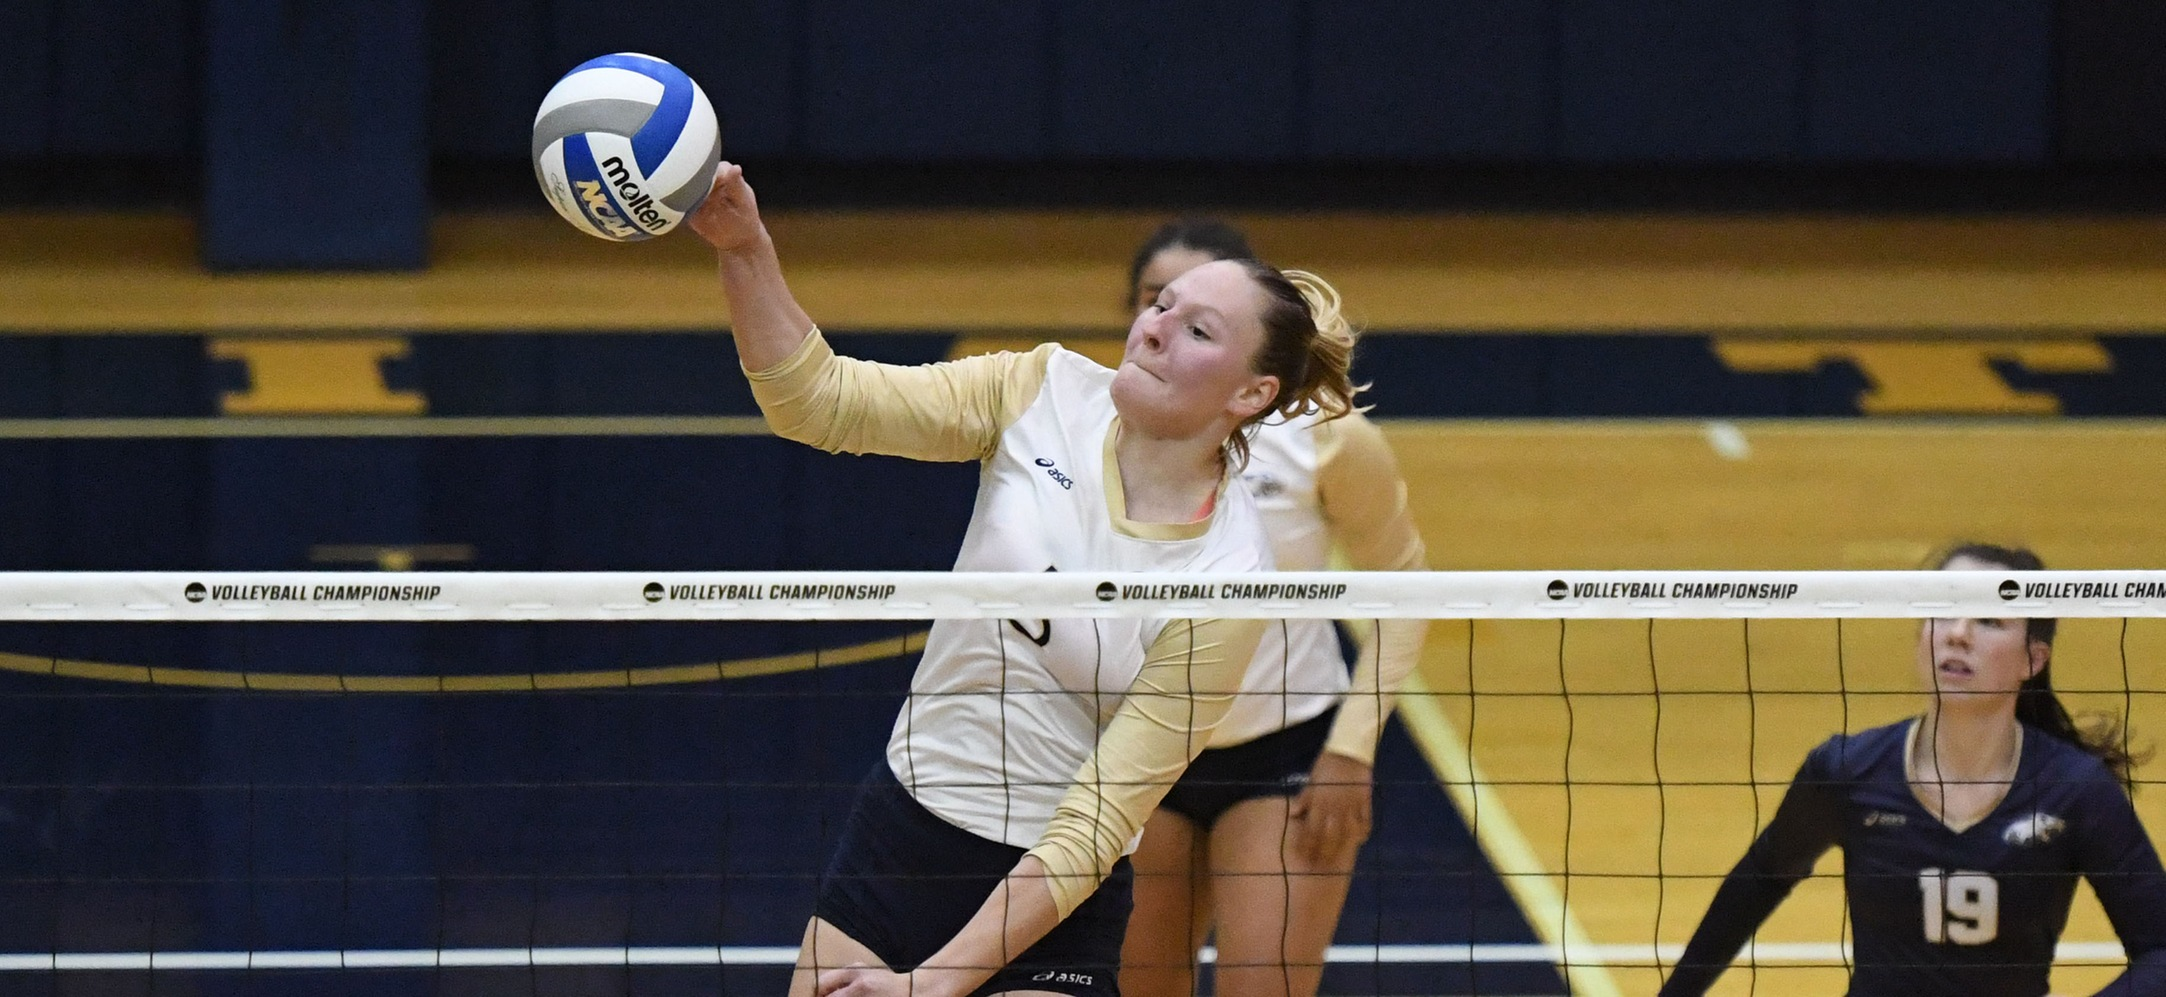 Marybeth Weihbrecht hit an efficient .625 with 11 kills to go with her two solo blocks and four block assists.